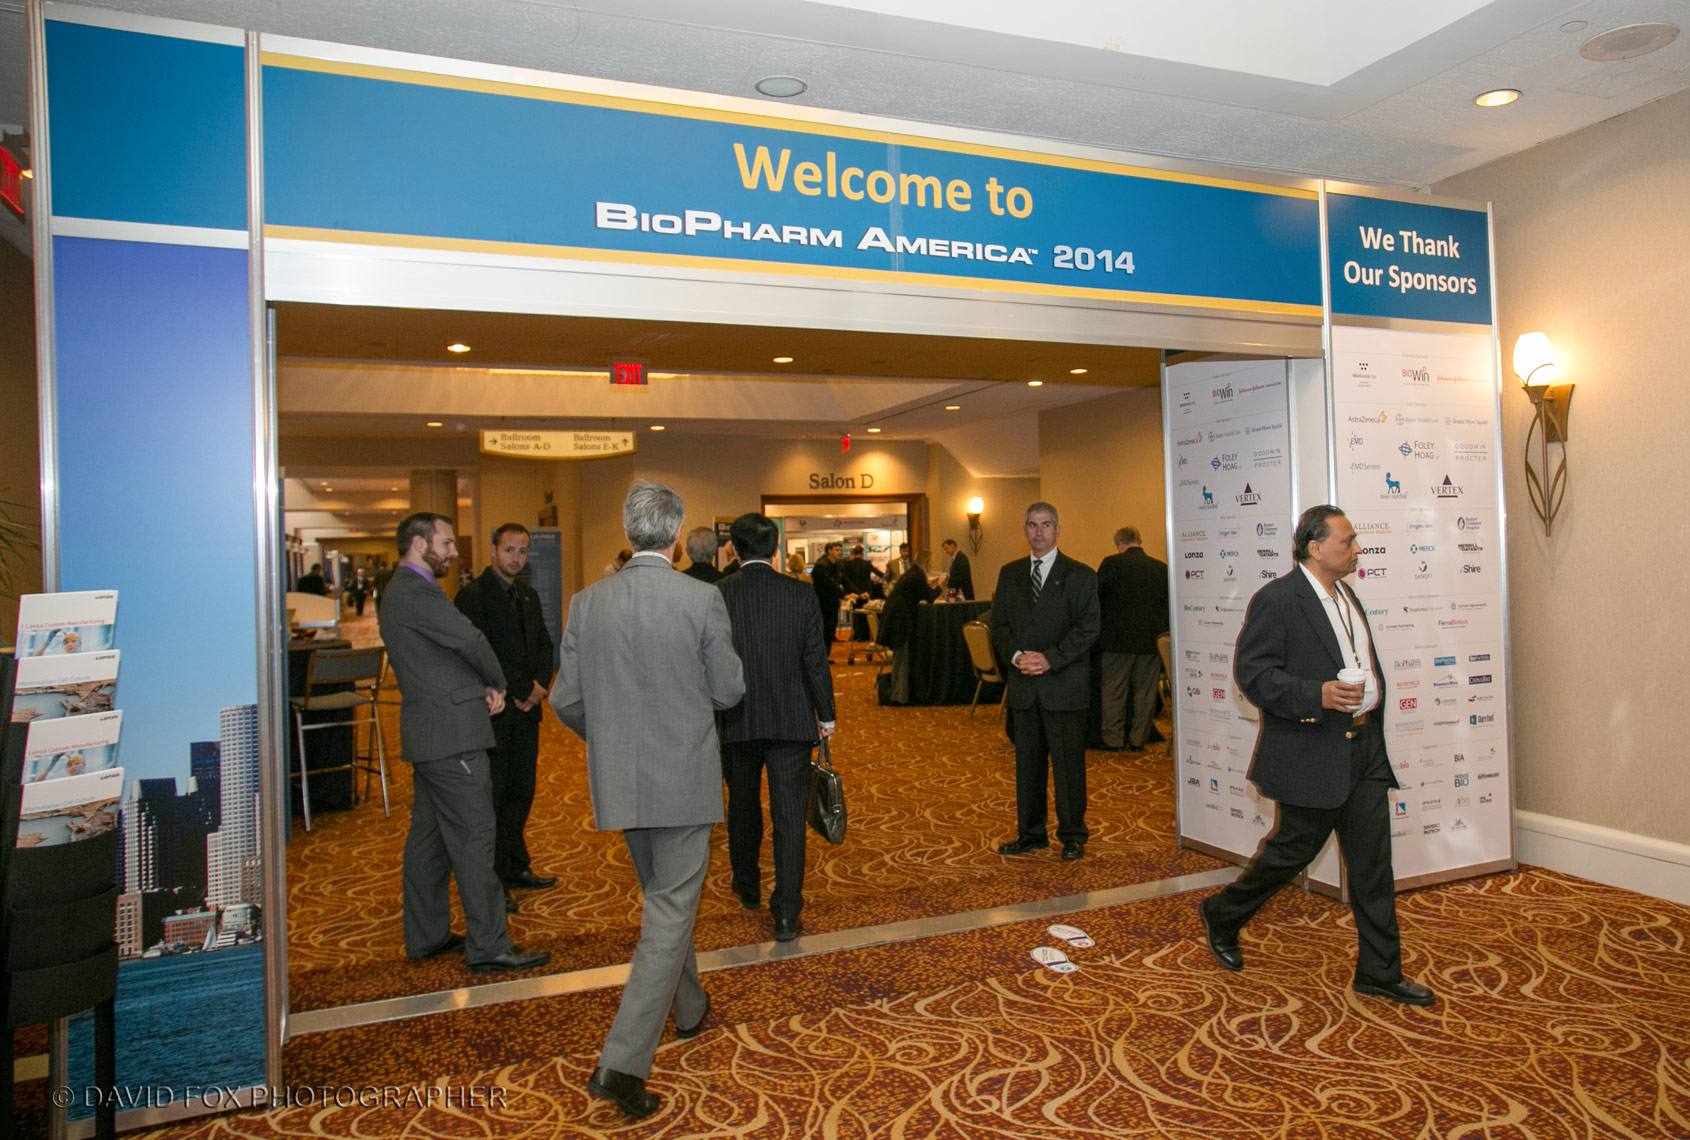 Welcome Entrance to the BioPharm America Conference Boston